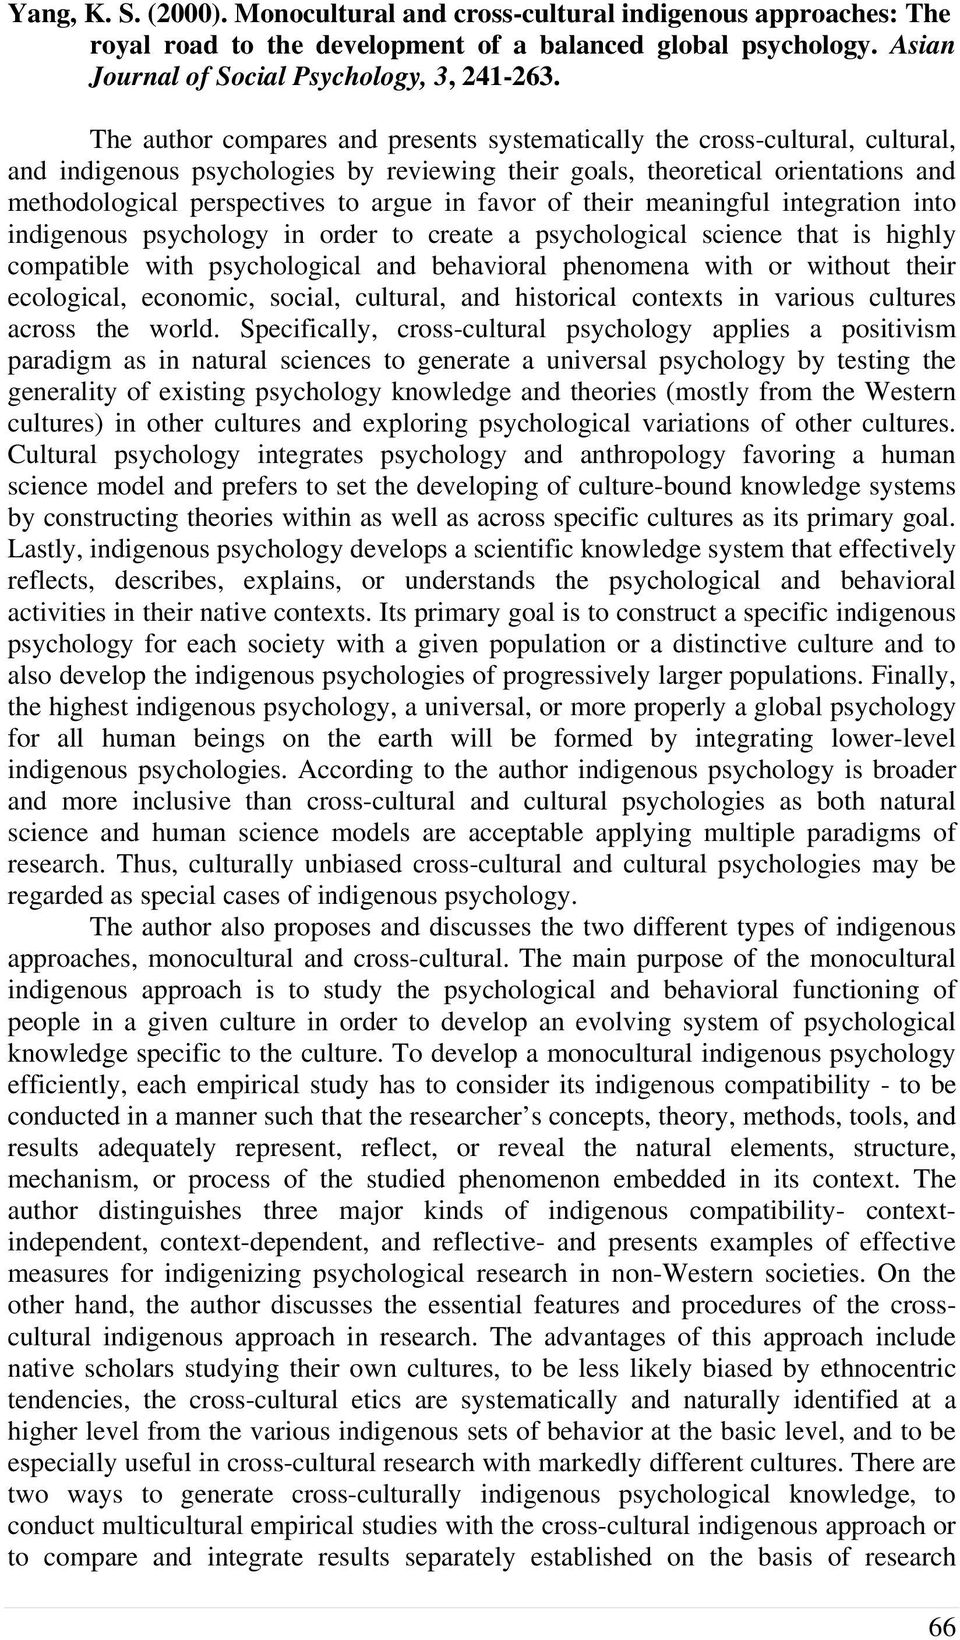 in favor of their meaningful integration into indigenous psychology in order to create a psychological science that is highly compatible with psychological and behavioral phenomena with or without